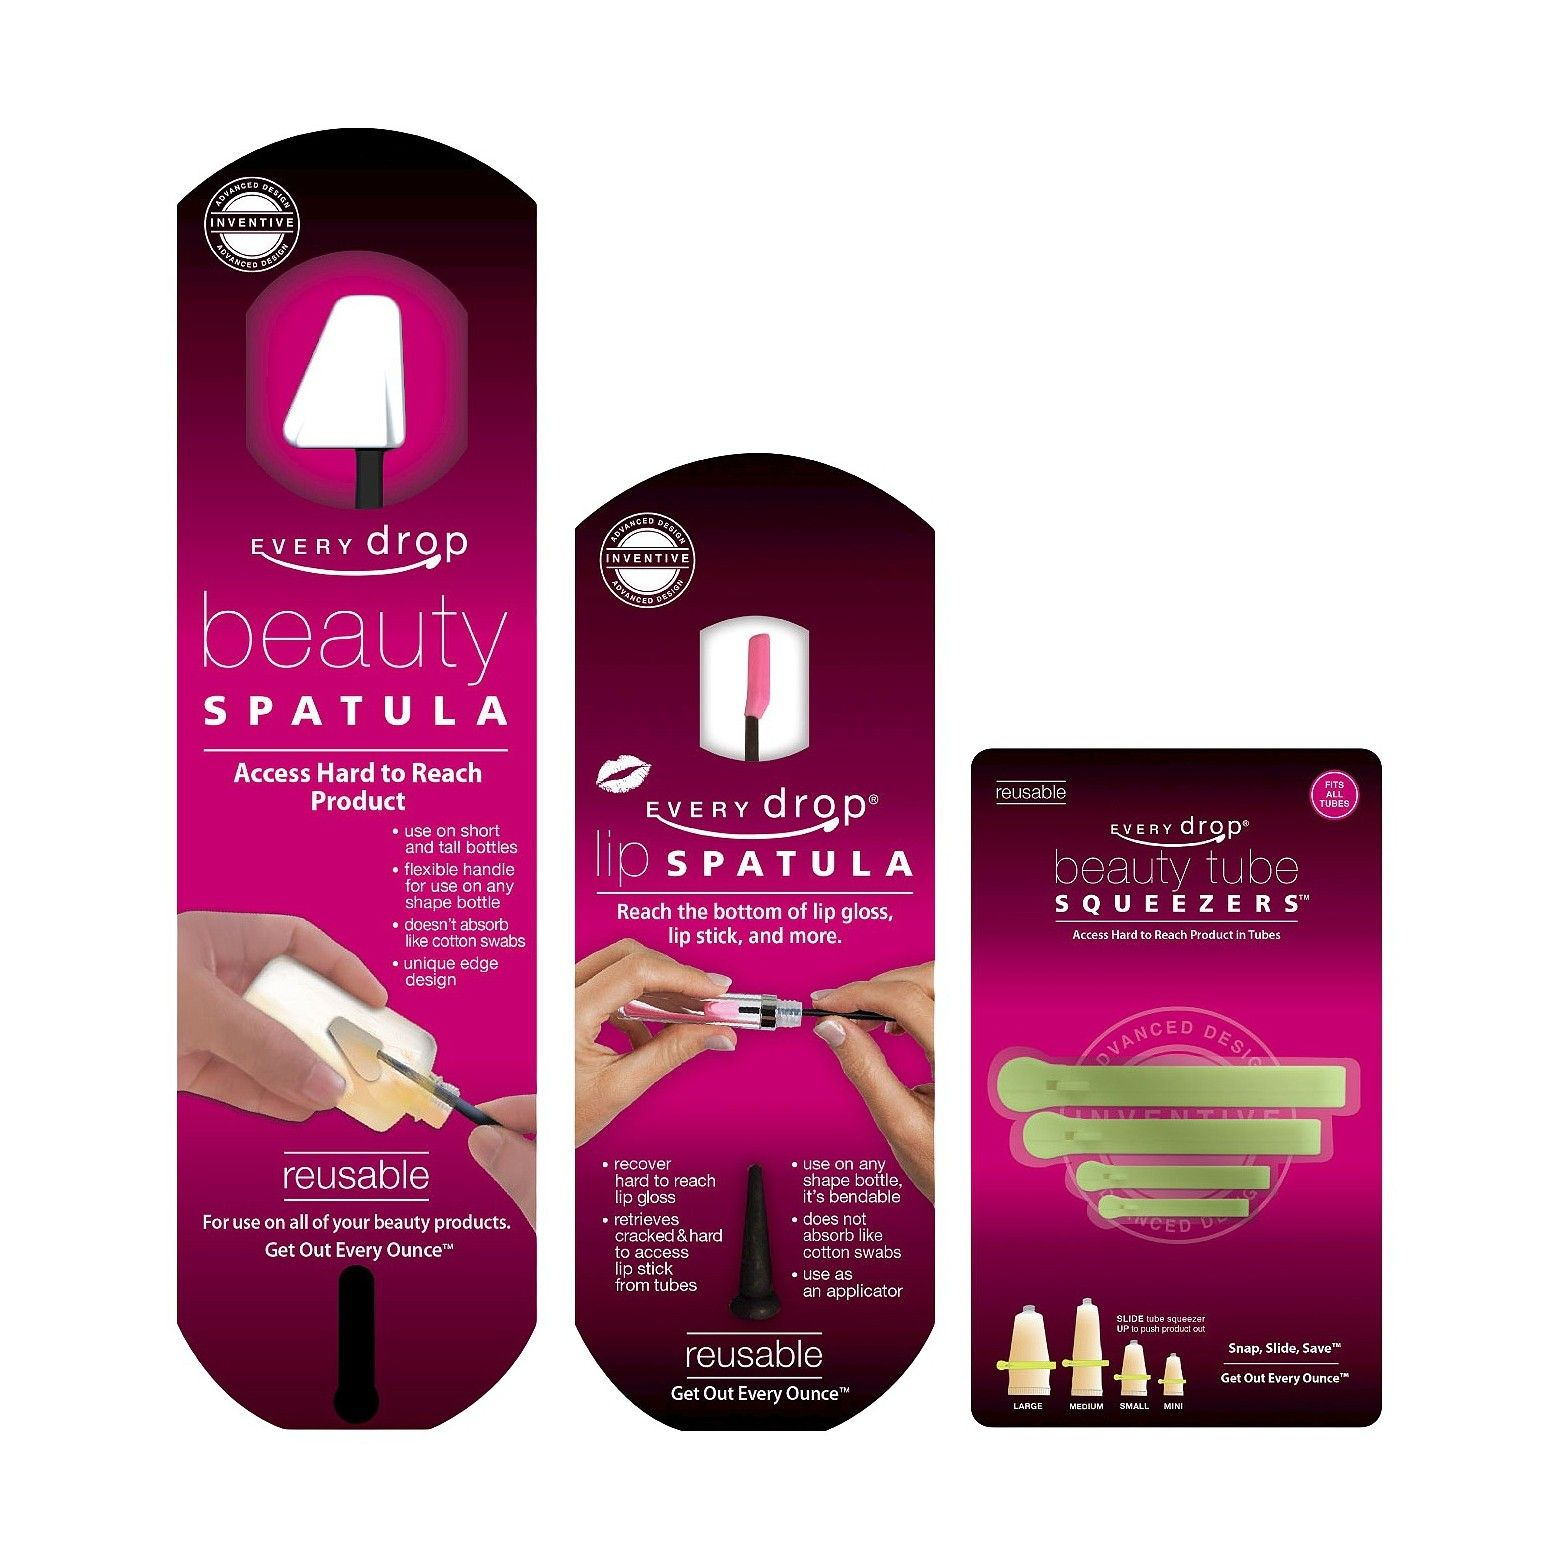 With the Every Drop Cosmetic Money Saving Tools, gone are